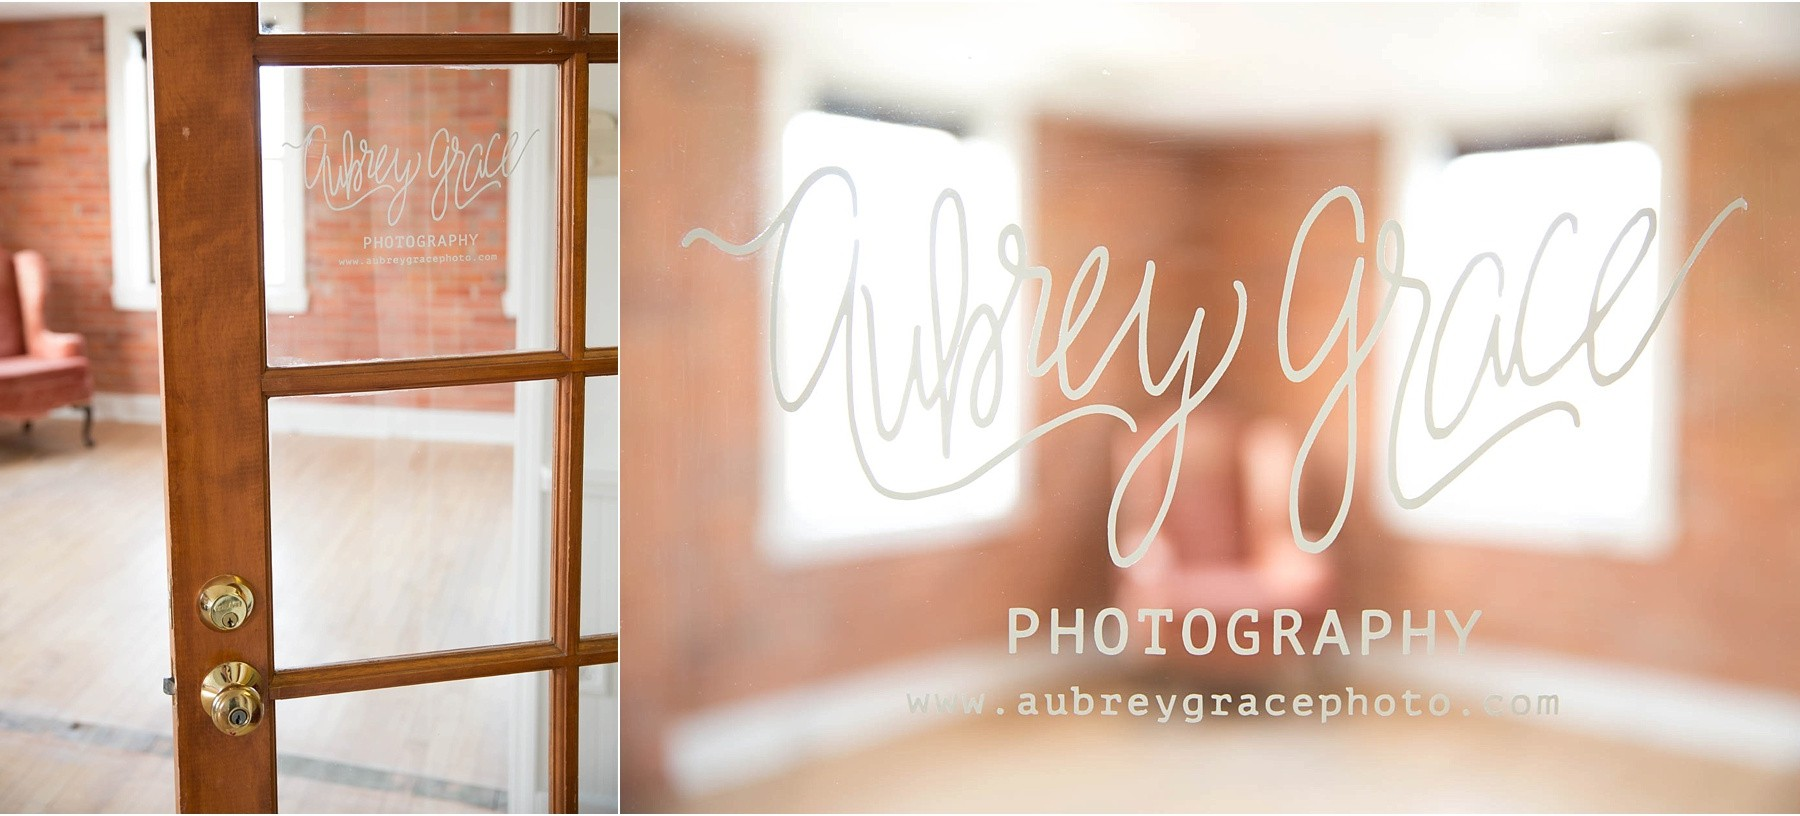 Aubrey Grace Photography Finally Has A Home!